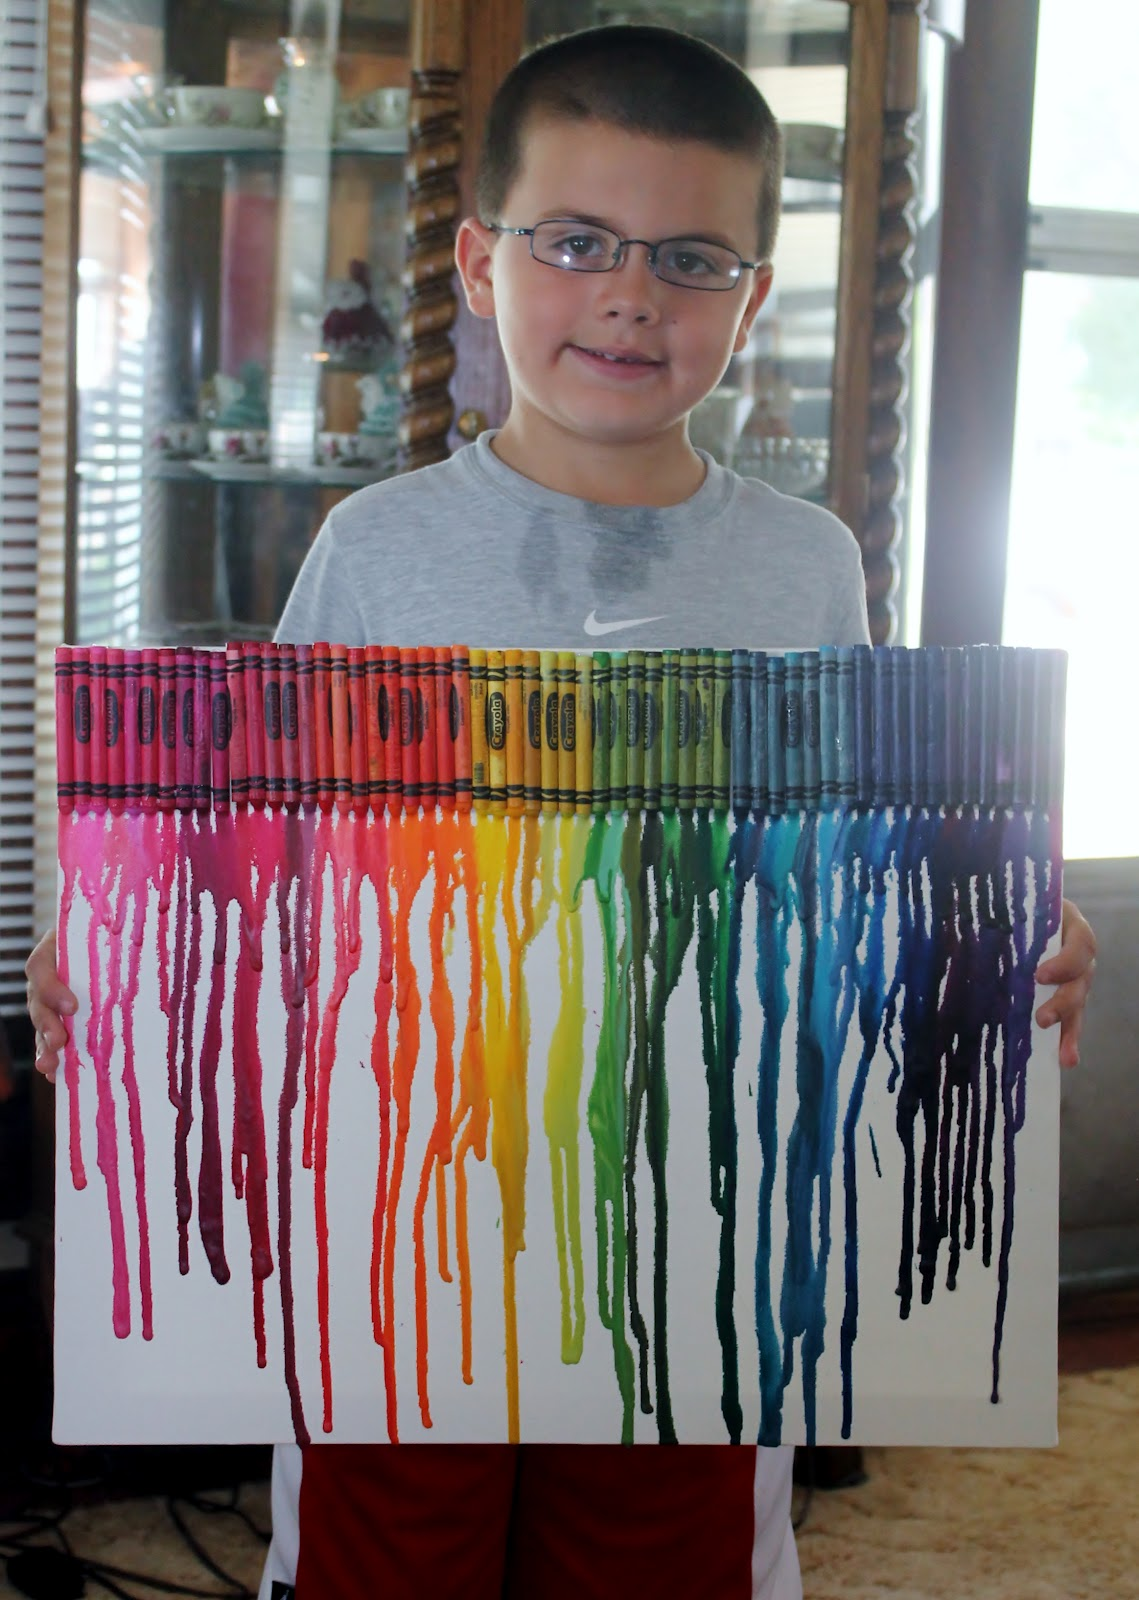 mama shona: 4h project -- crayon canvas art!